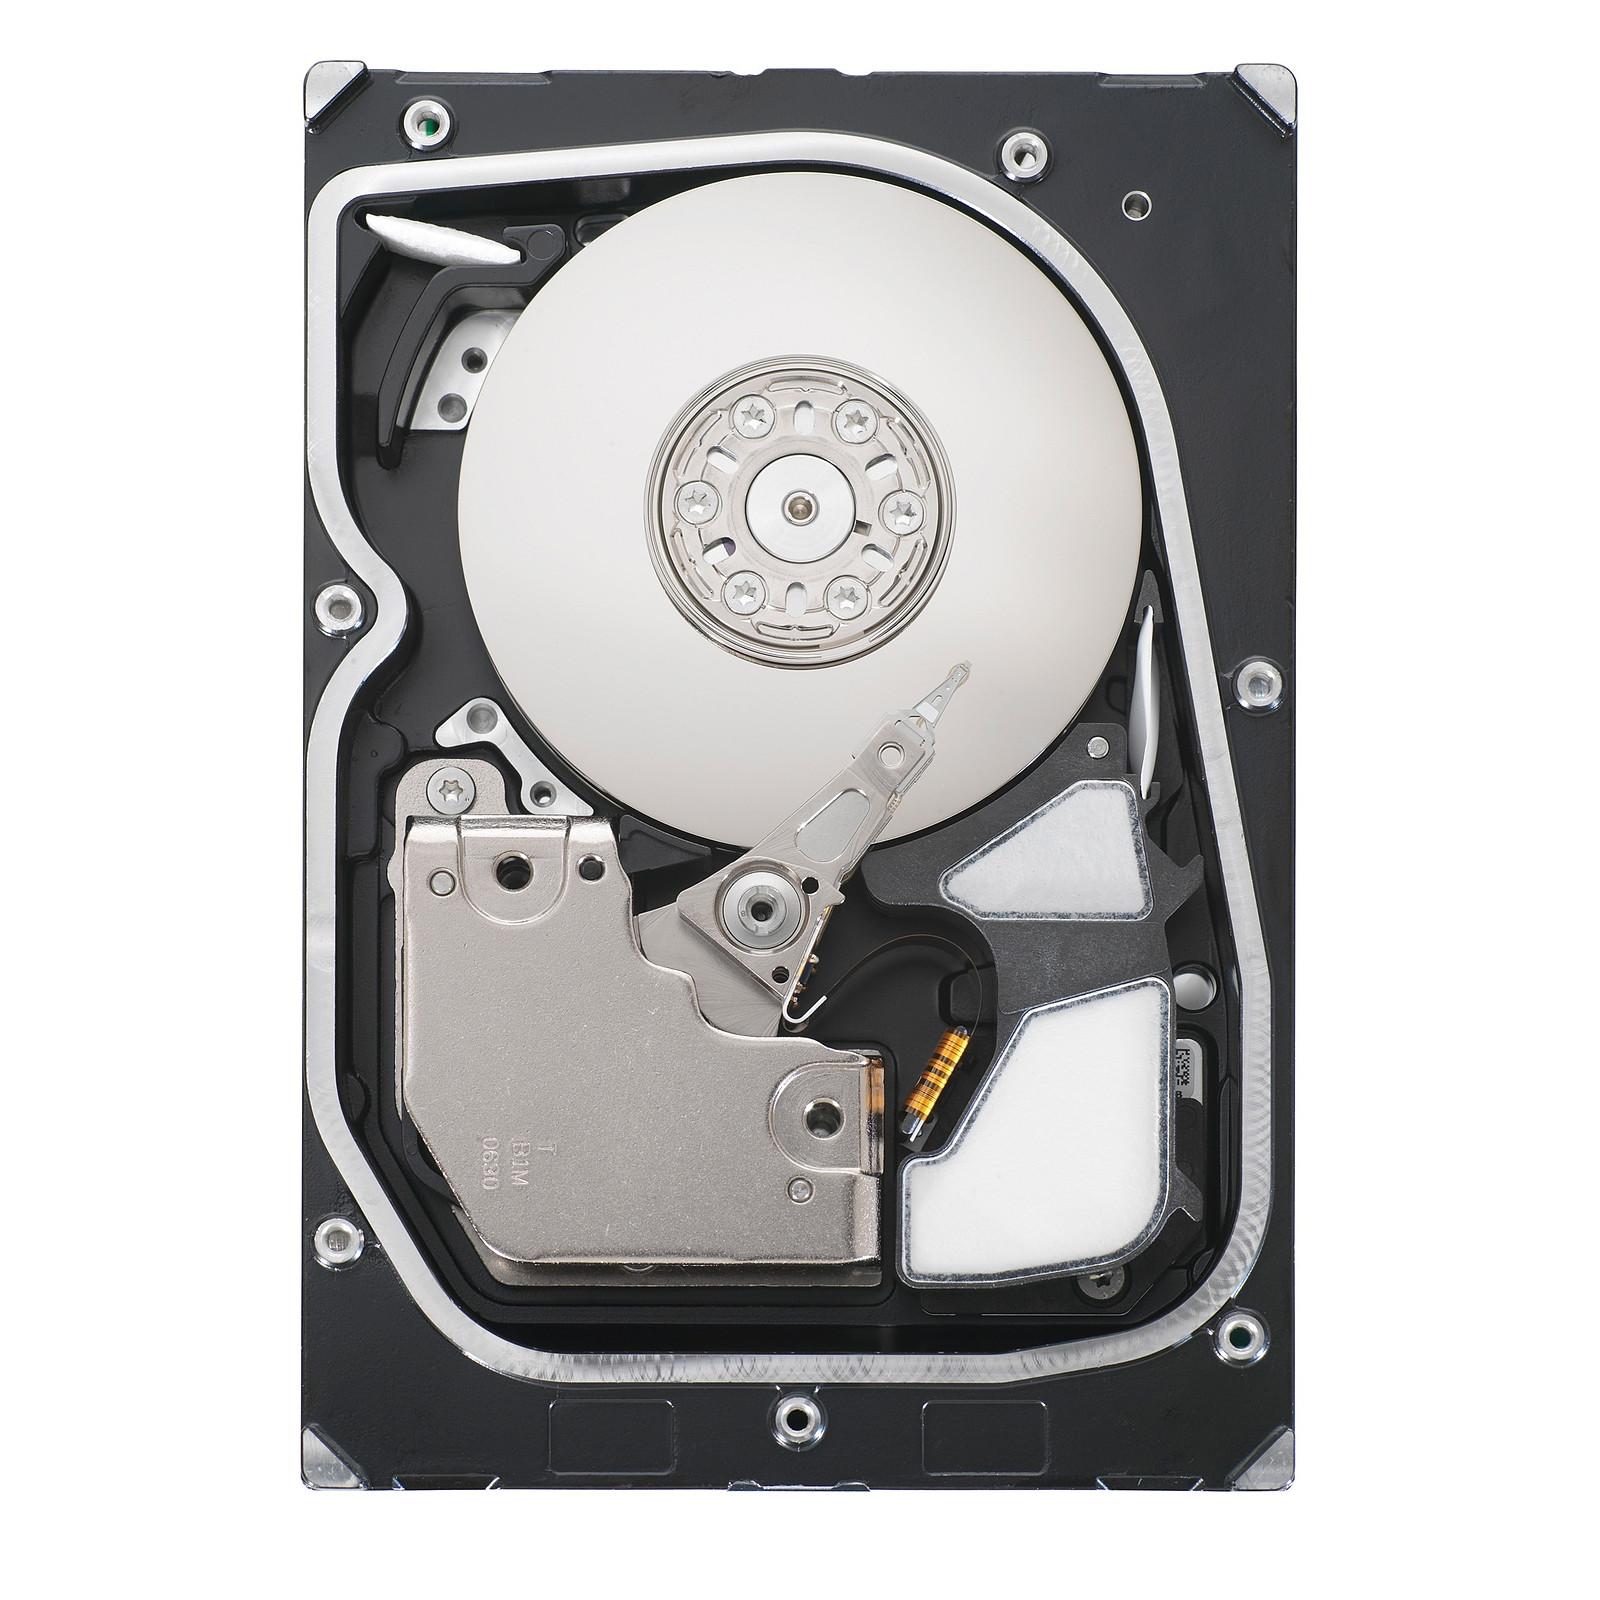 Seagate Cheetah 15K.5 146.8 Go  SCSI 68 broches